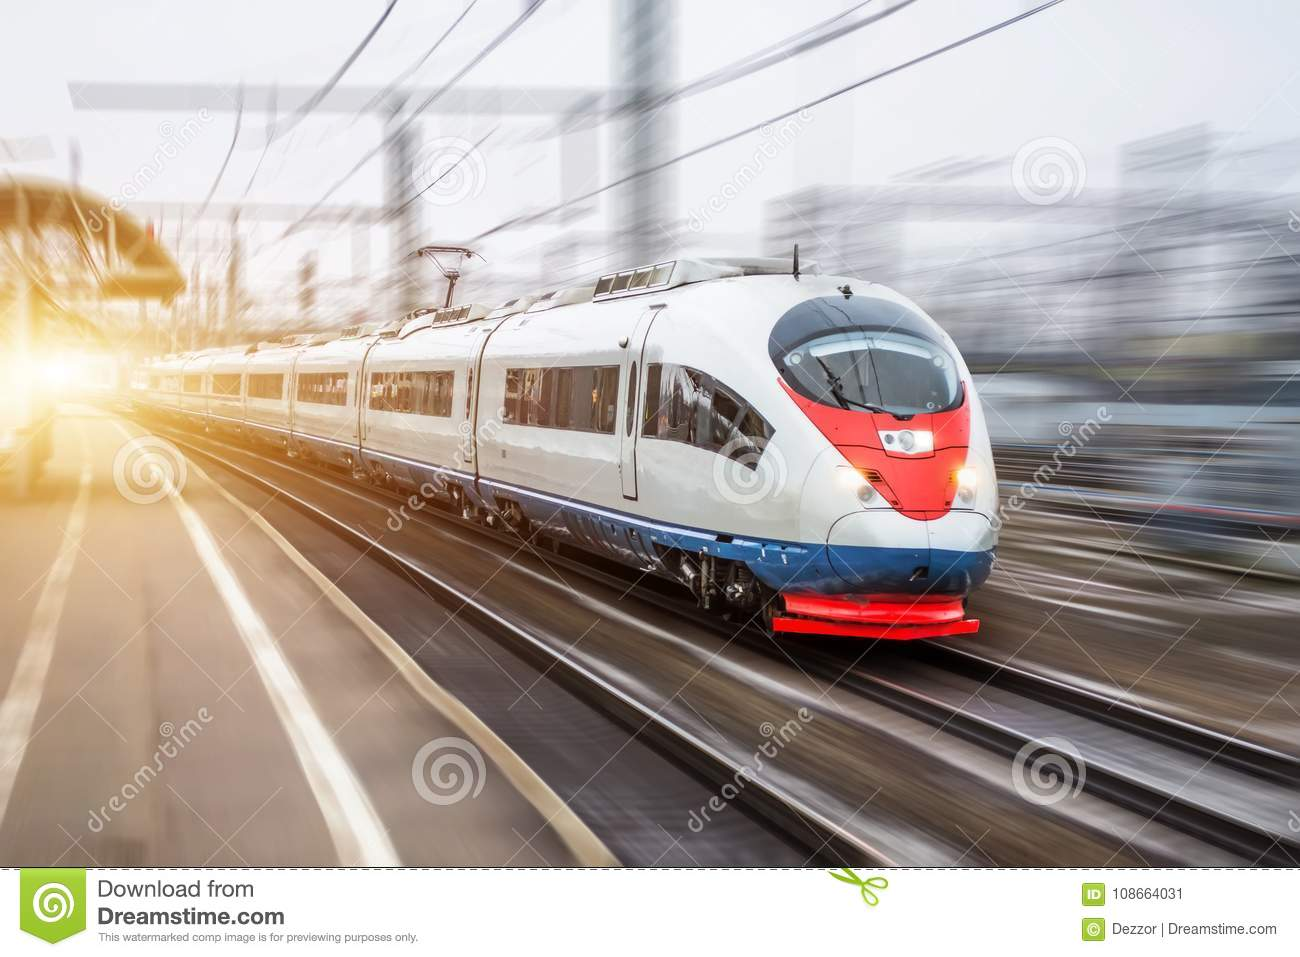 High speed train rides at high speed at the railway station in the city.